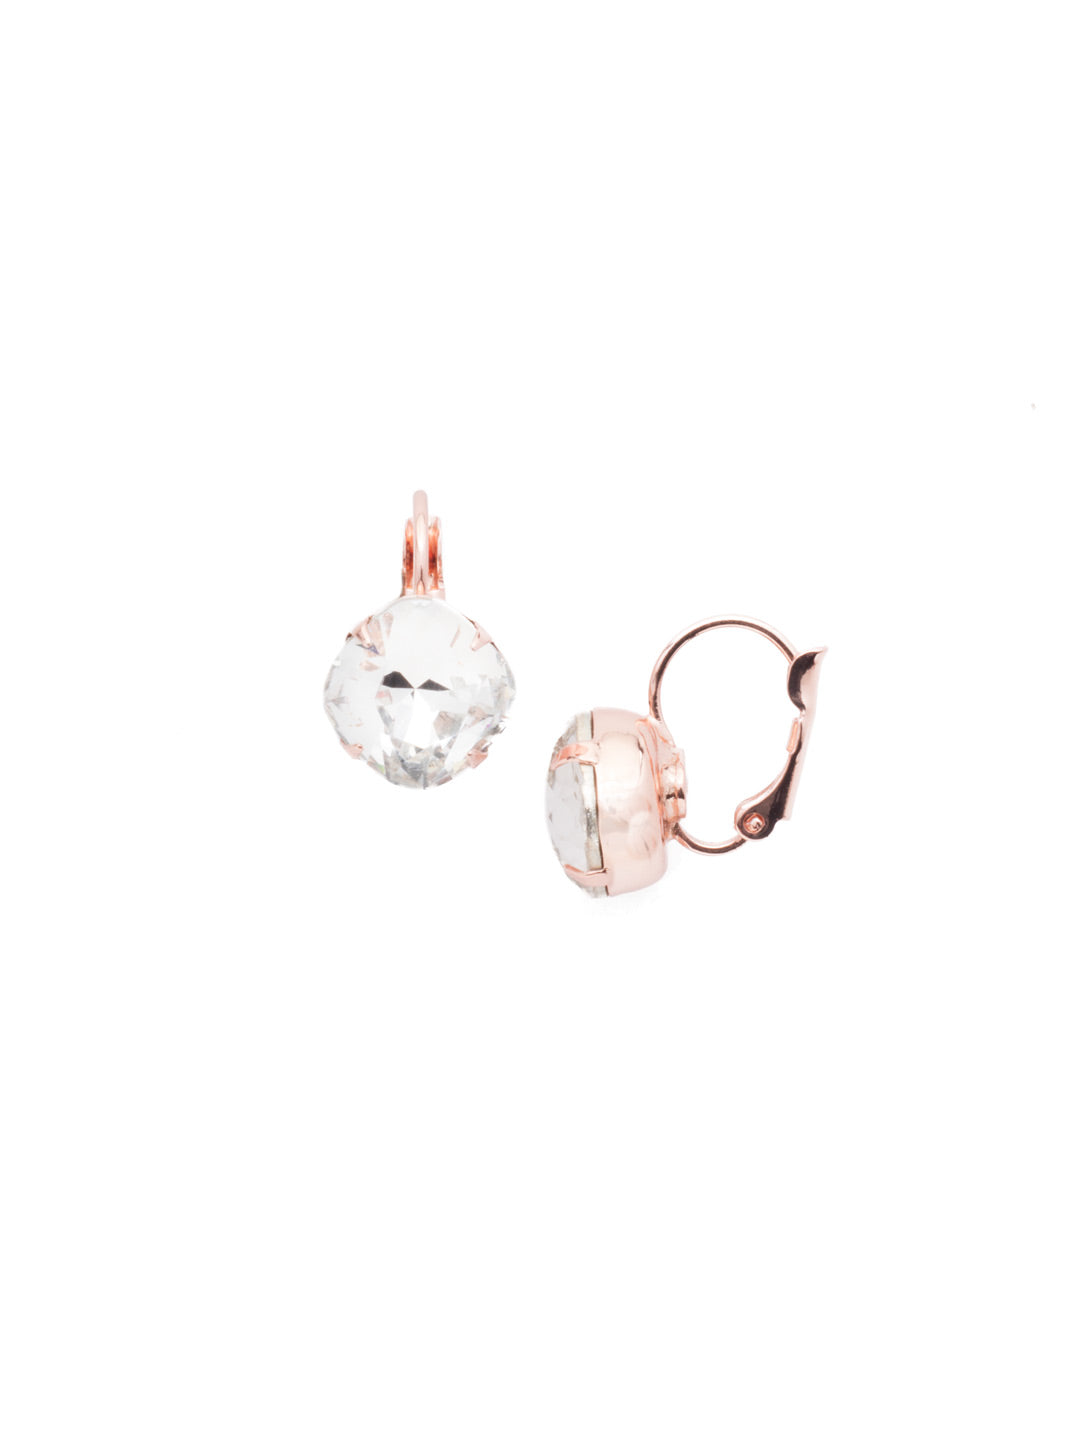 Cushion-Cut Dangle Earrings - EDL12RGCRY